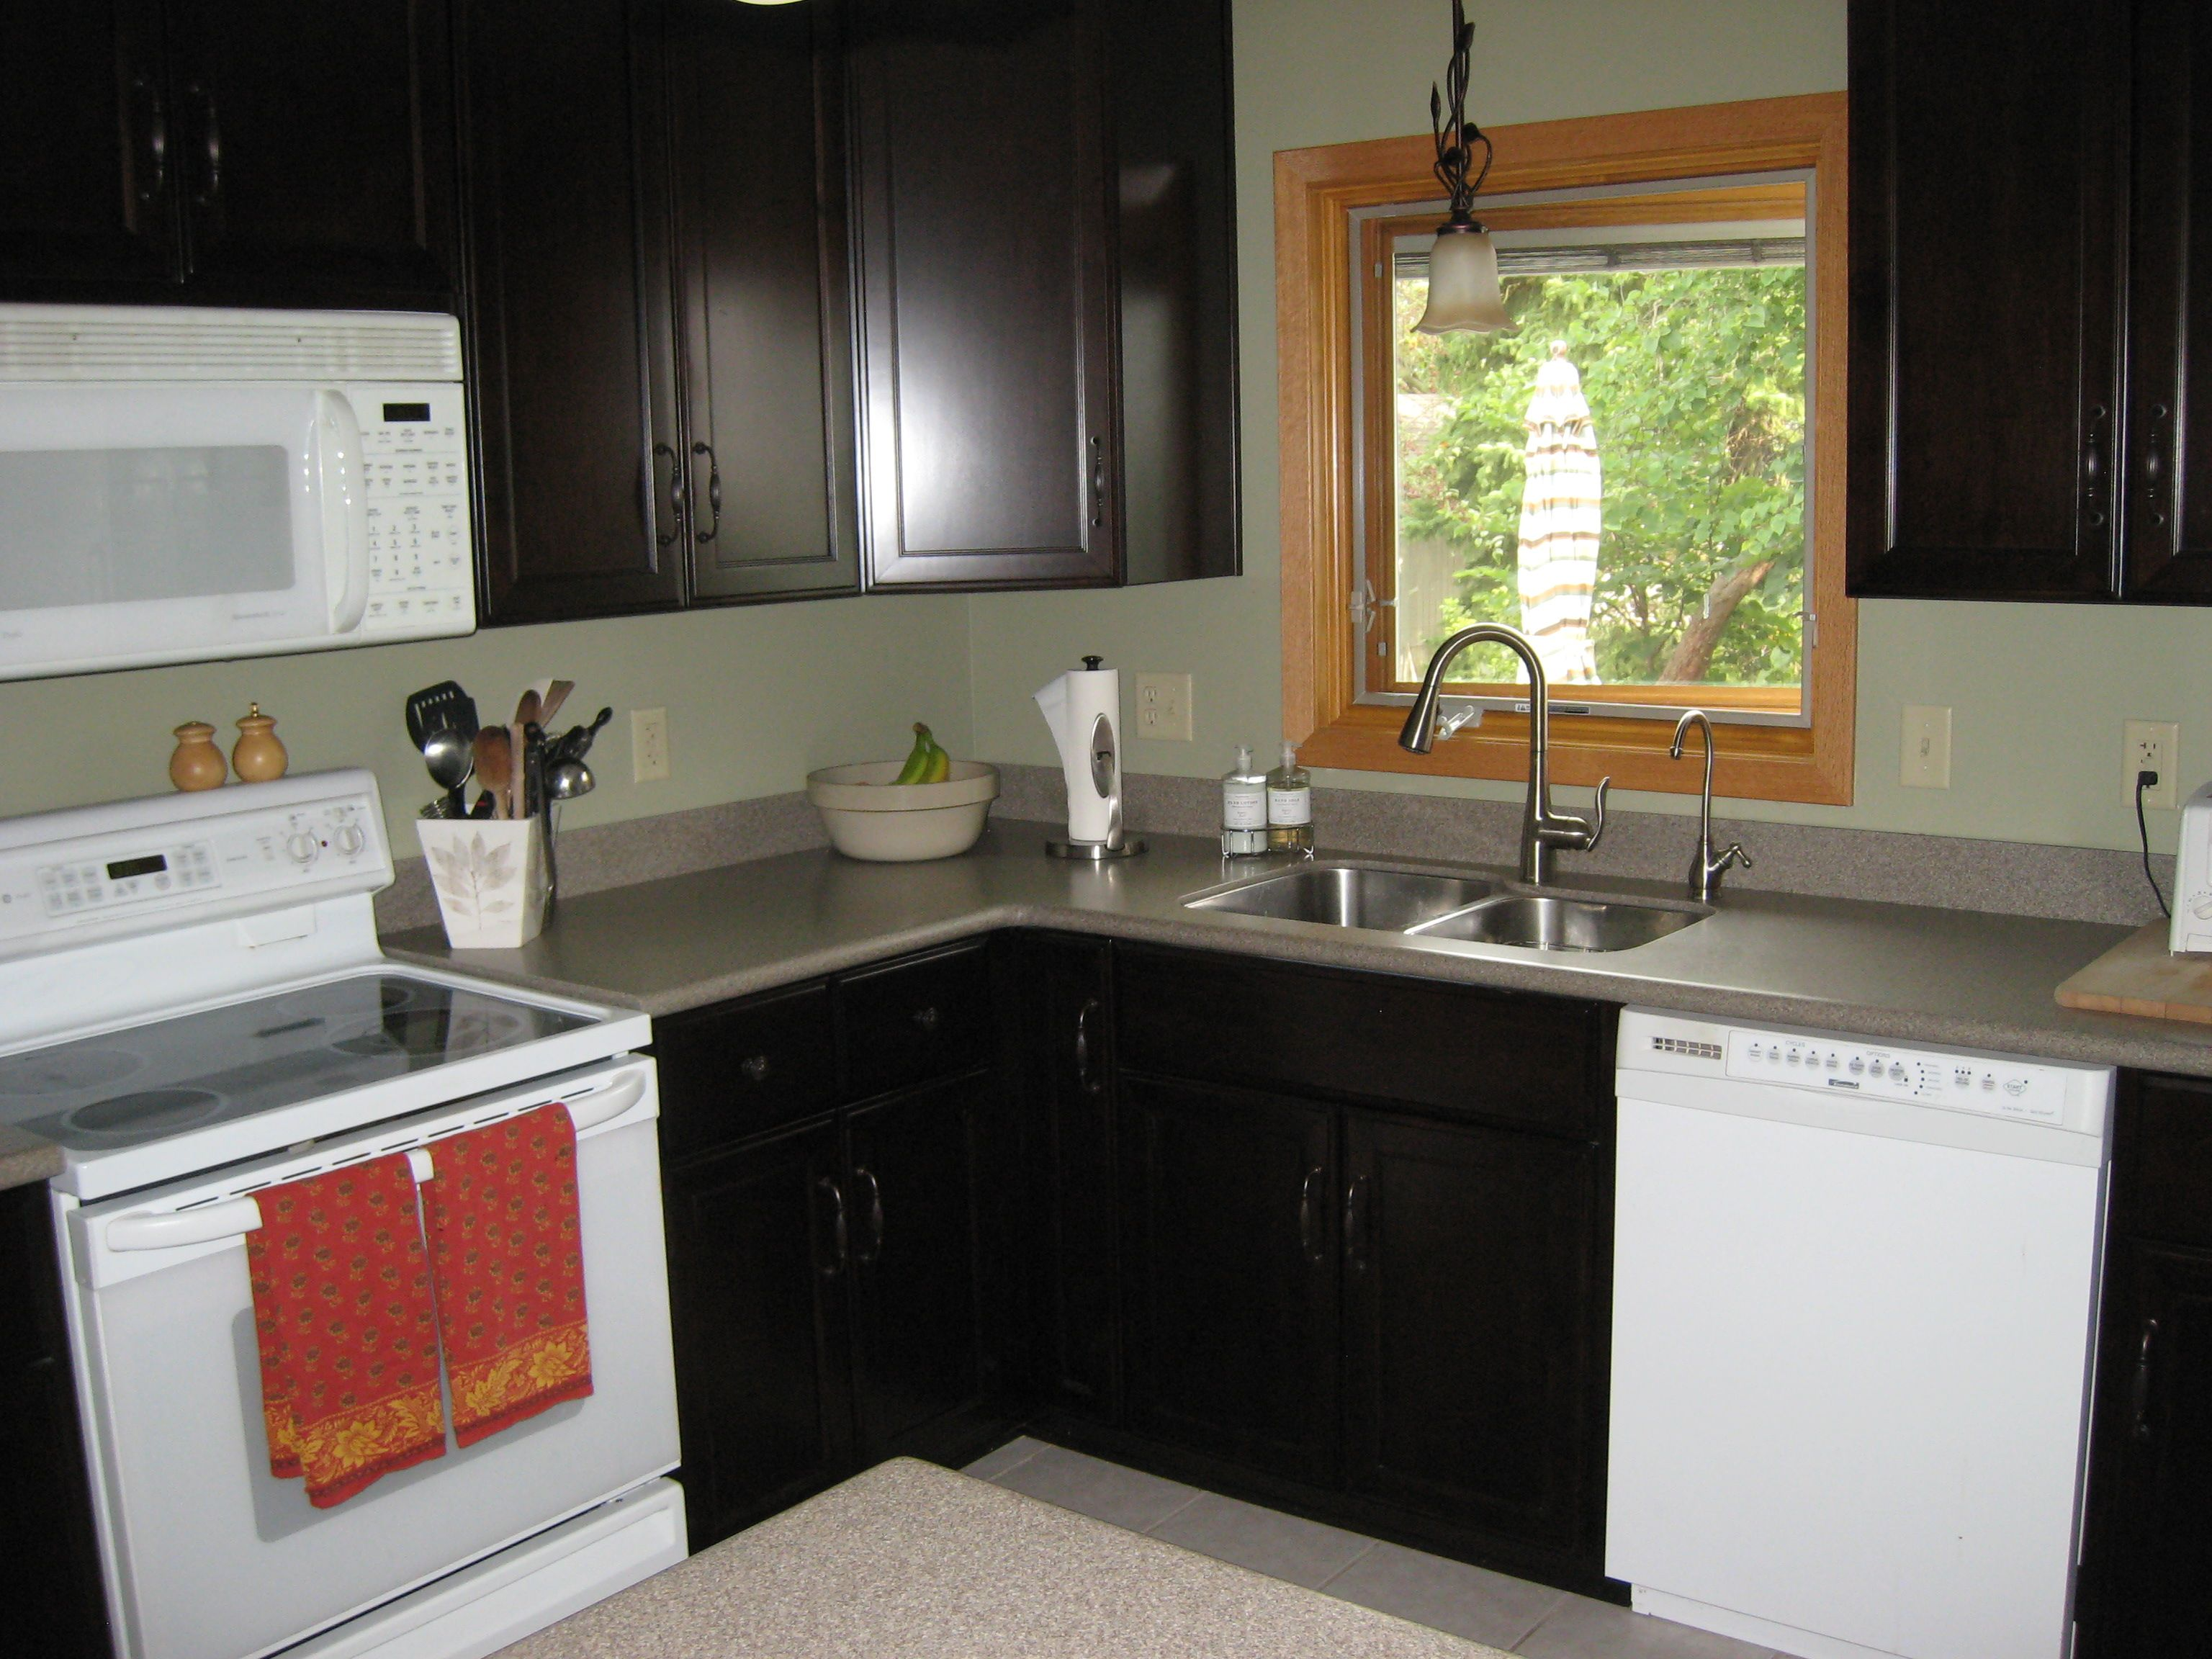 Best Small L Shaped Kitchen Like Yours With Dark Cabinets And 400 x 300